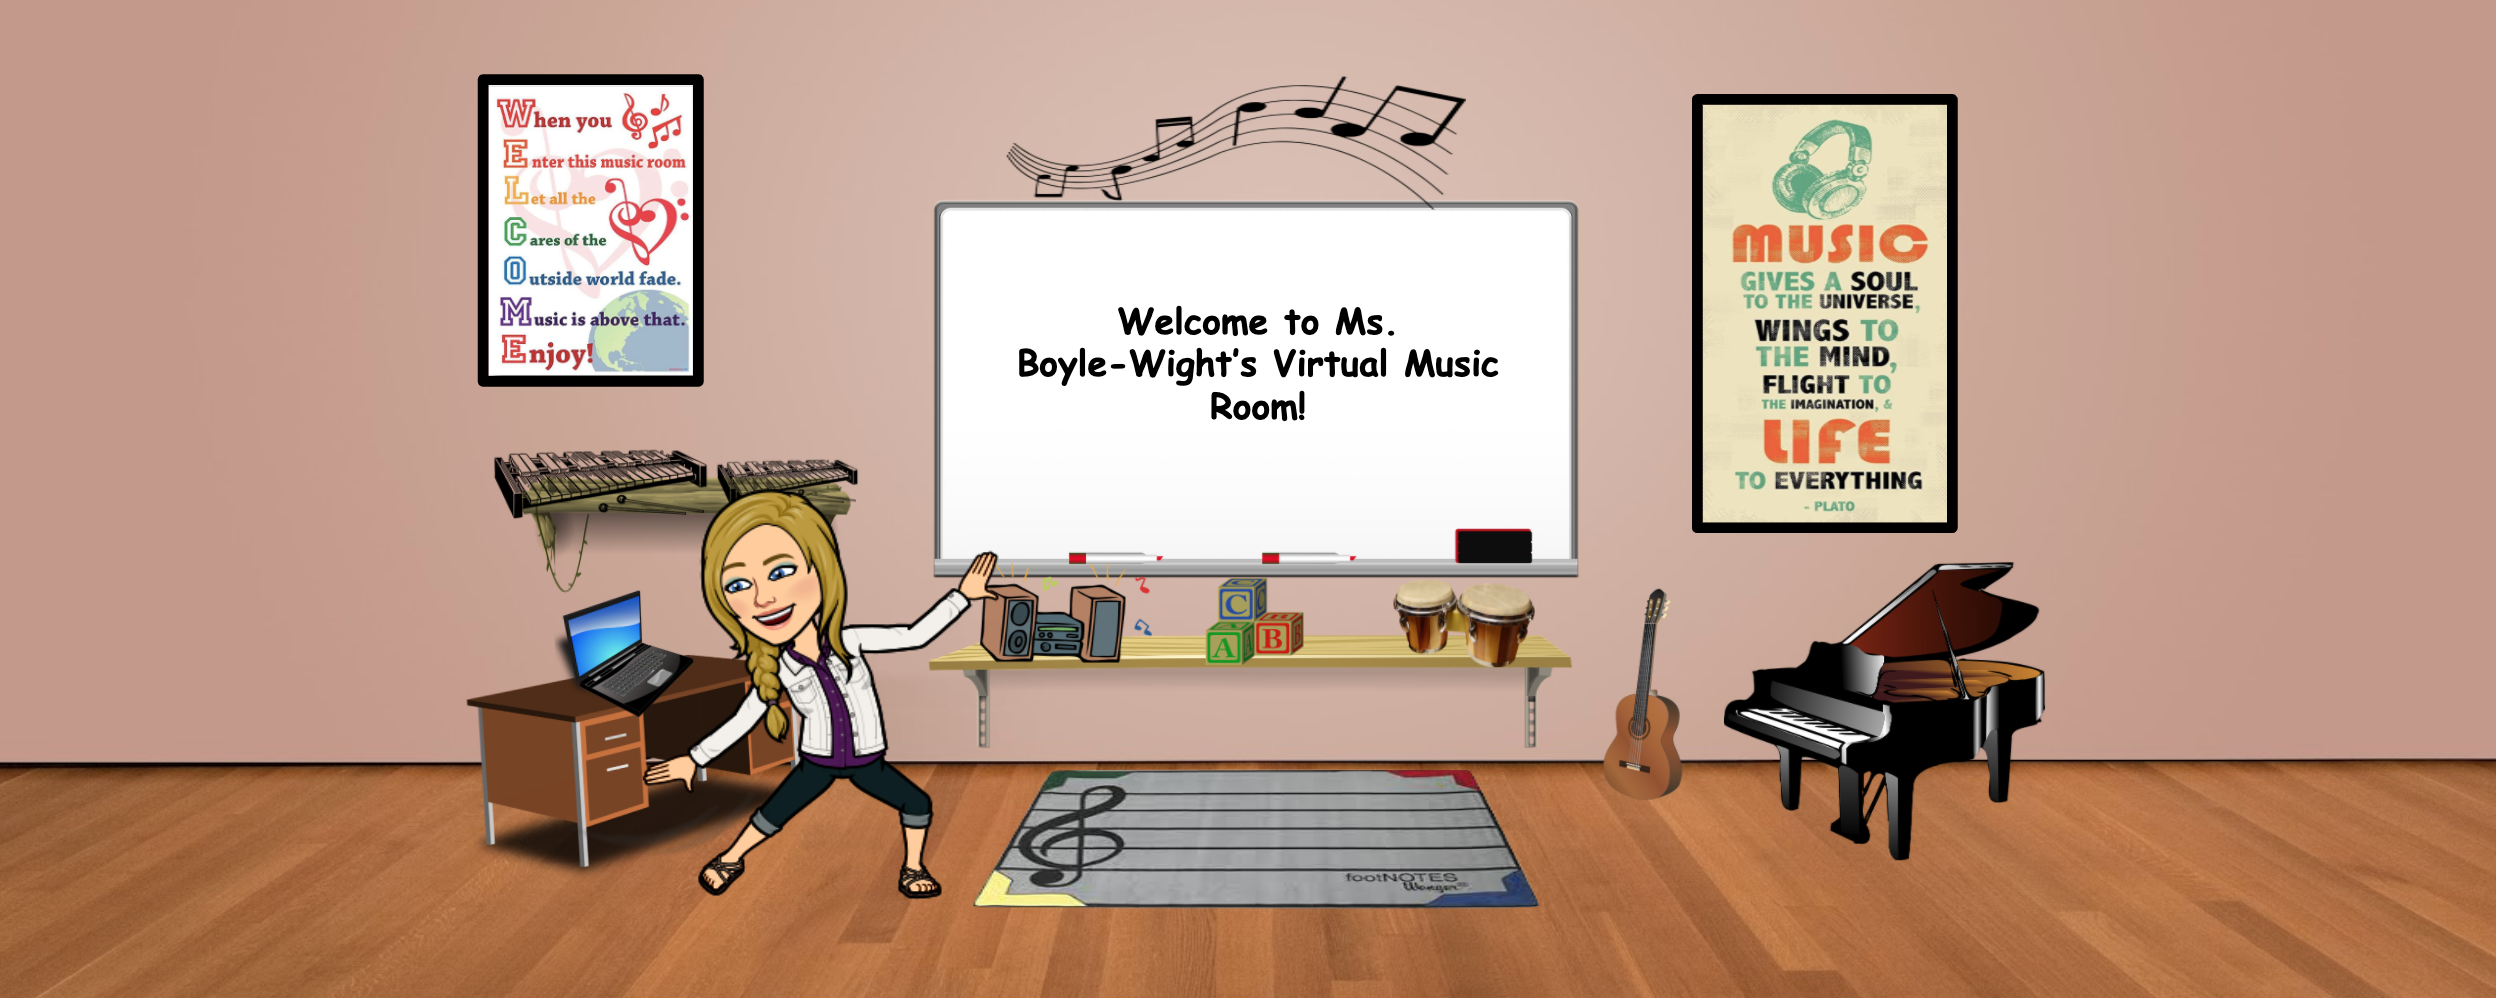 Ms. B's Virtual Music Room!